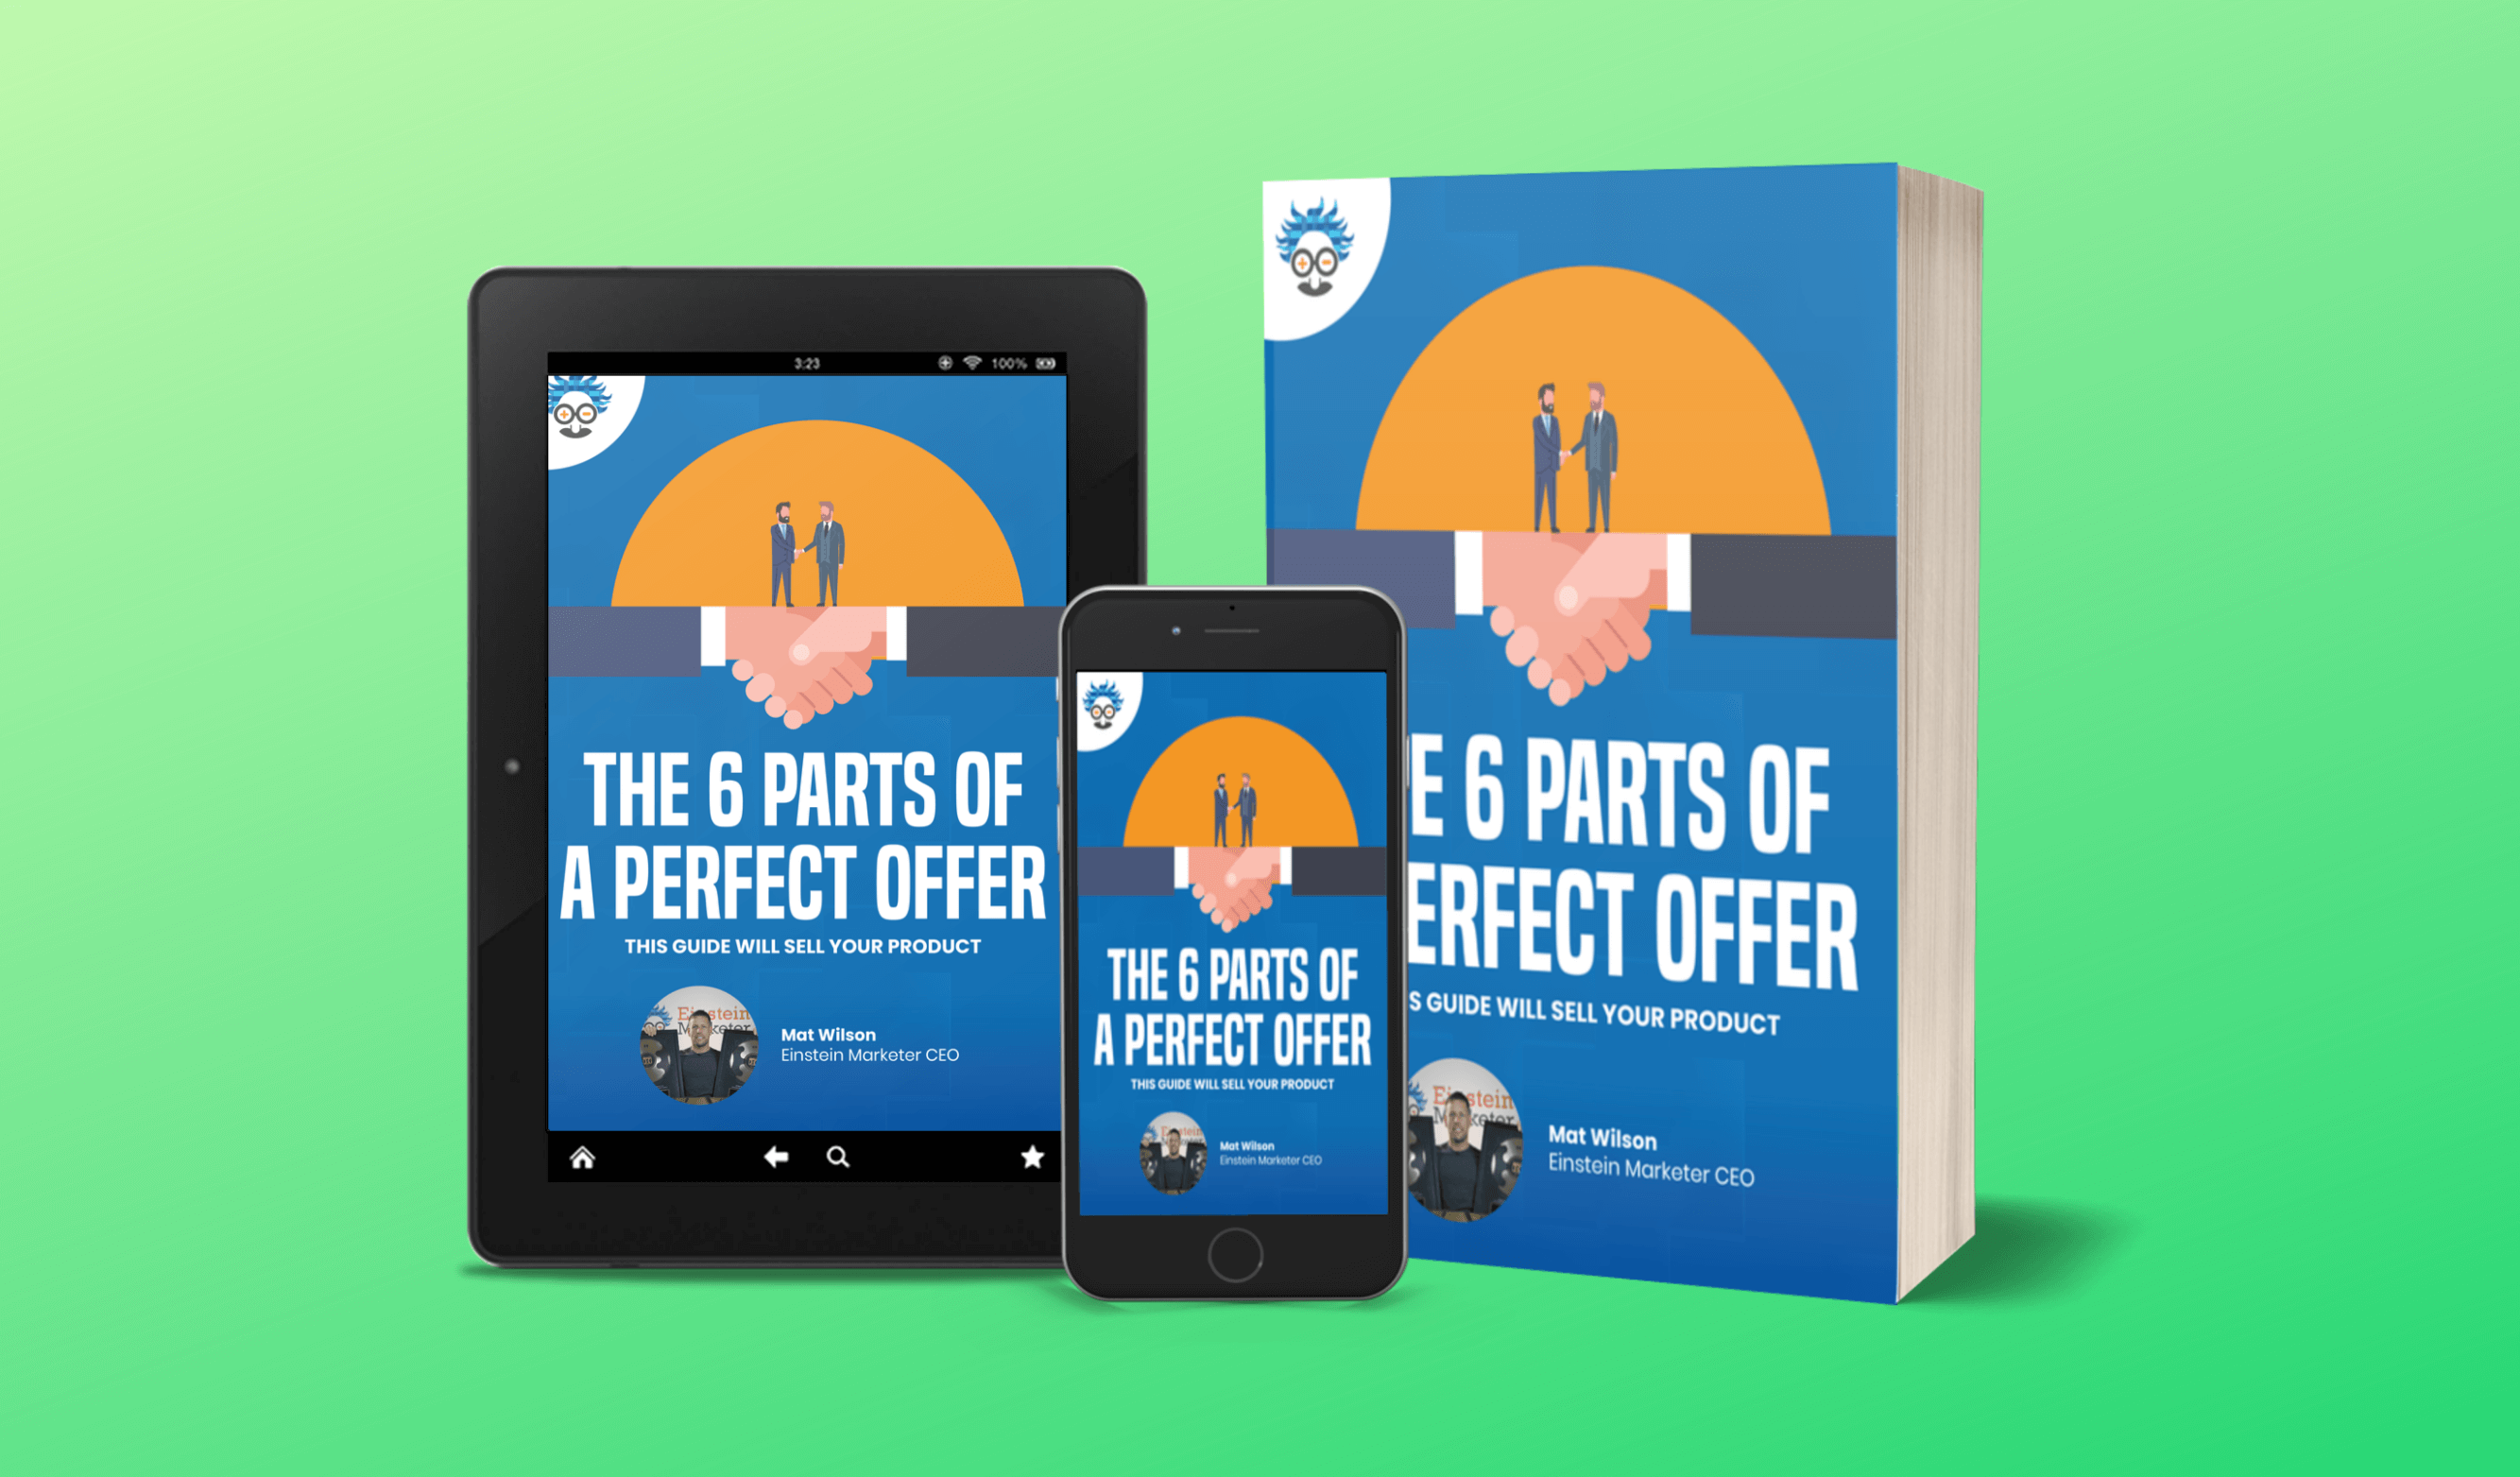 The 6 Parts of a Perfect Offer